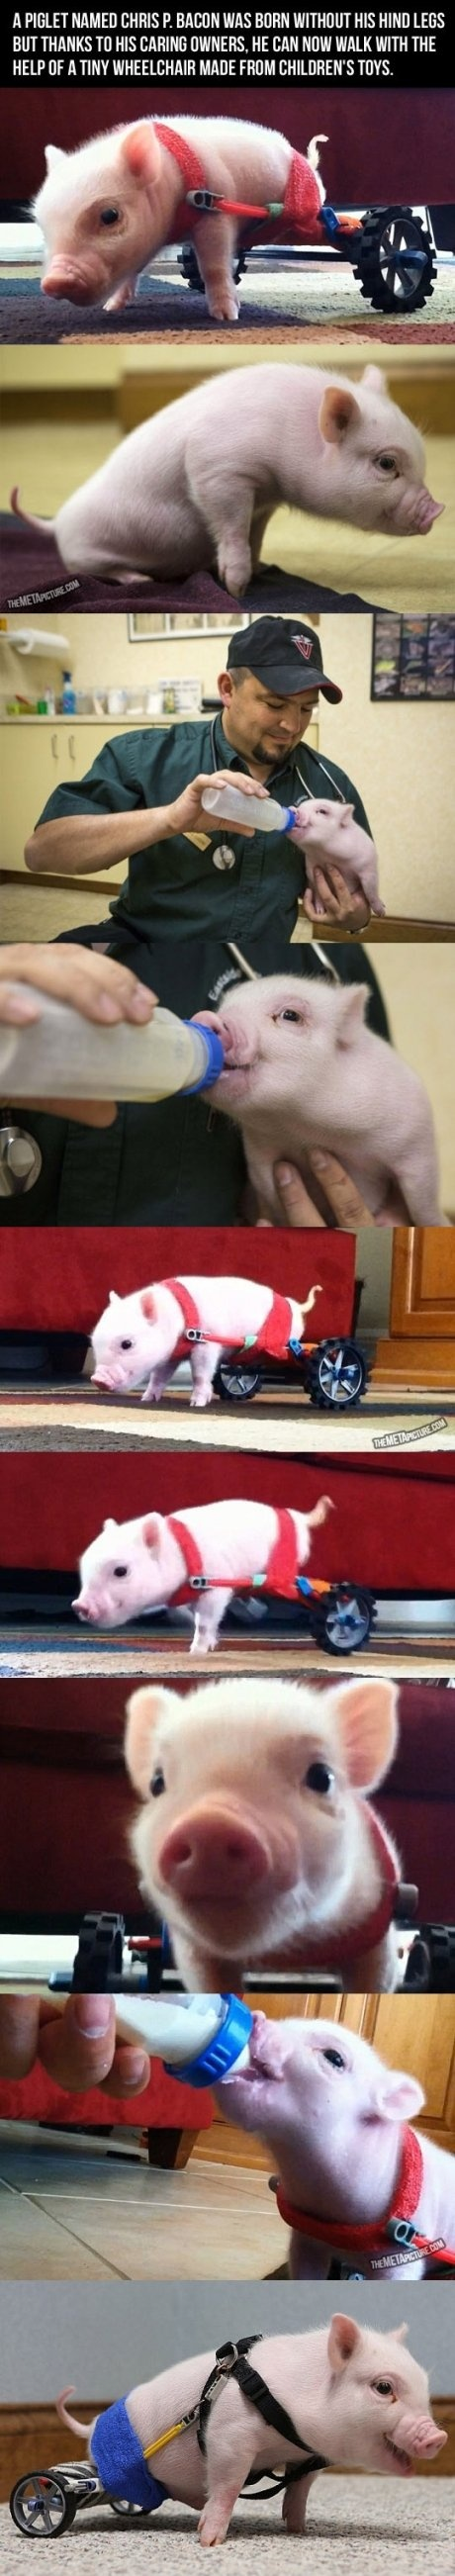 A Piglet Named Chris P. Bacon - look al the little piggy!